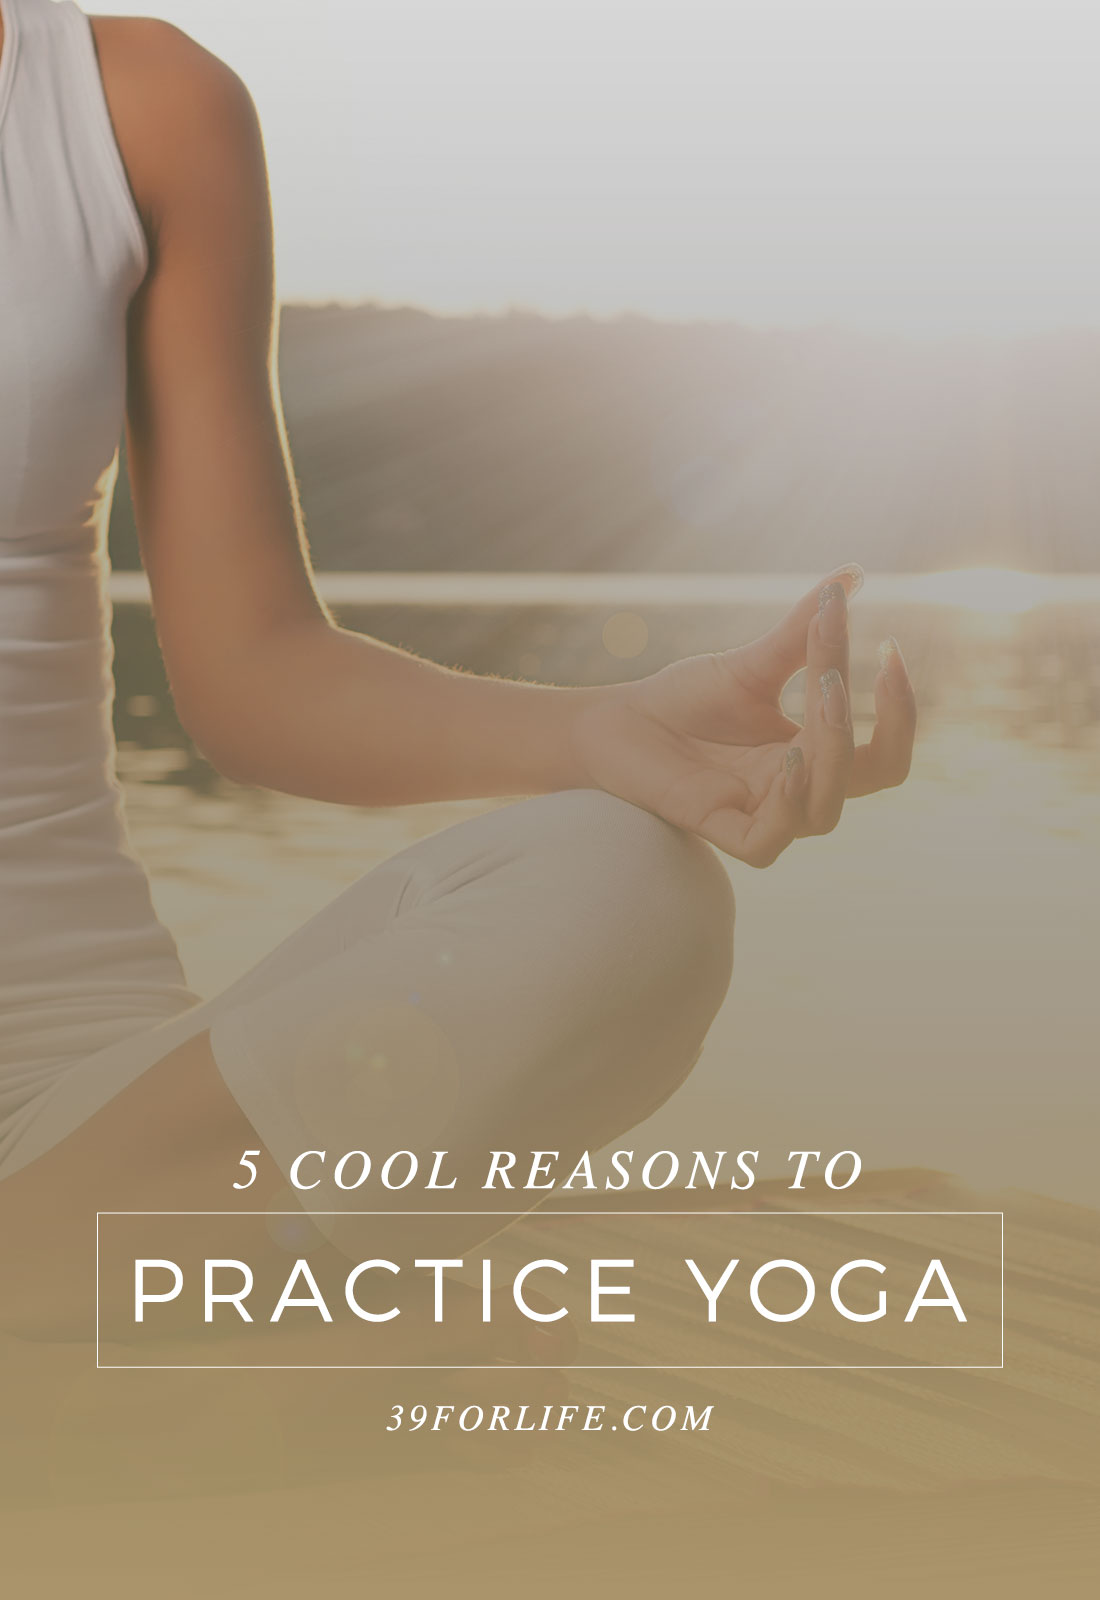 Yoga practice isn't just a way to clear your mind. It also packs in some serious health benefits. Why you should integrate yoga into your daily routine.